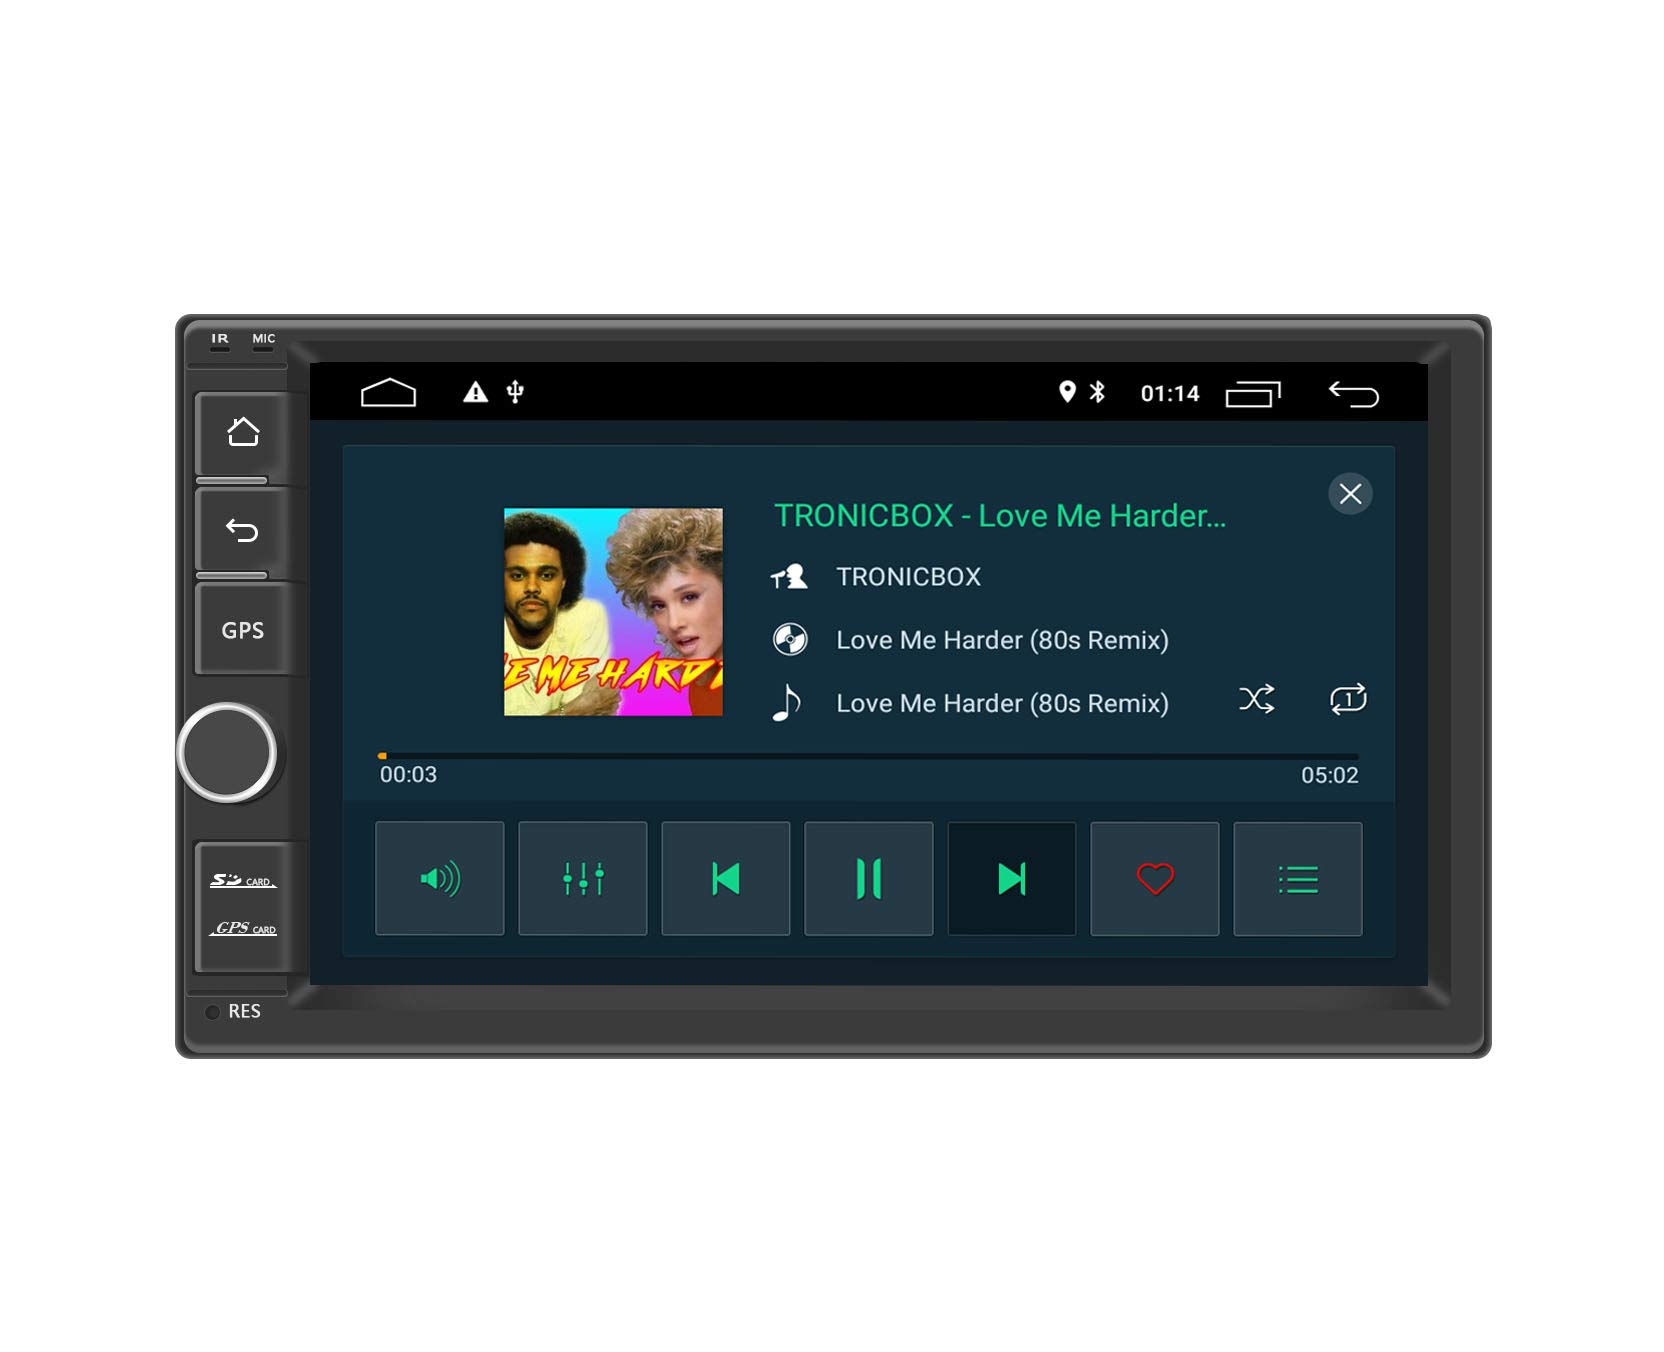 Henhaoro Android 9.0 car Stereo 2G Ram 7'' in Dash 2 Din GPS Navigation Player Receiver Touch Screen Radio Head Unit SD Support 256GB by Henhaoro